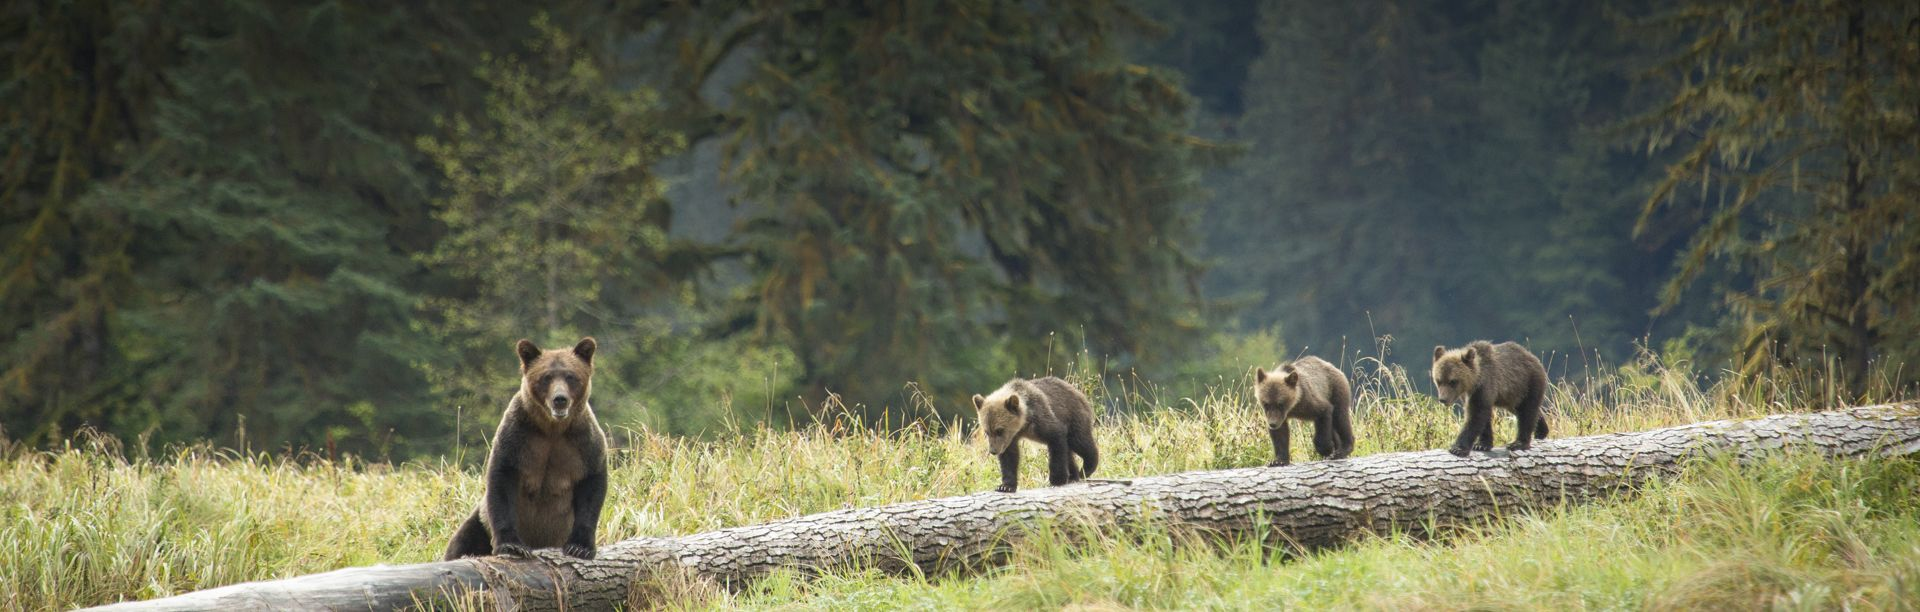 Bears walk along a fallen log in a BC forest.